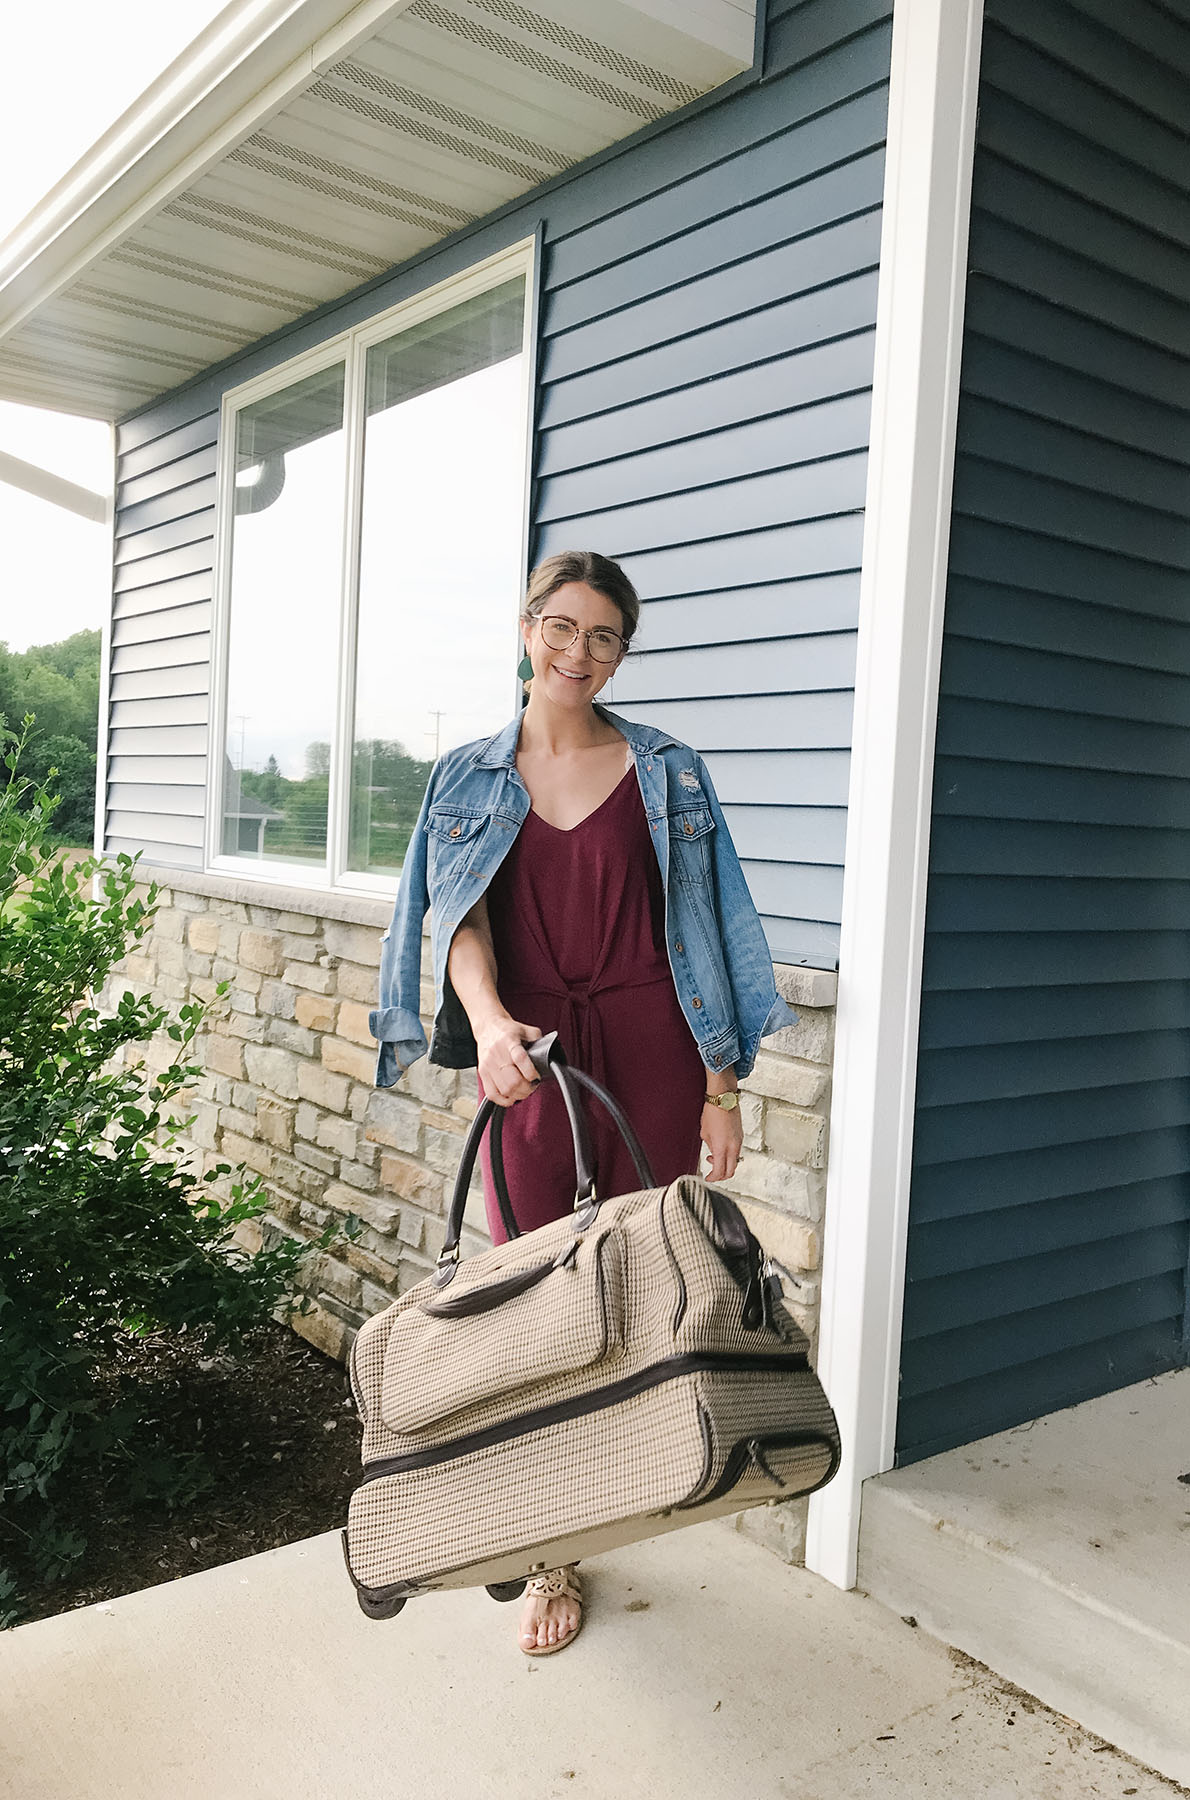 Tips To Make Leaving For Vacation Even Better